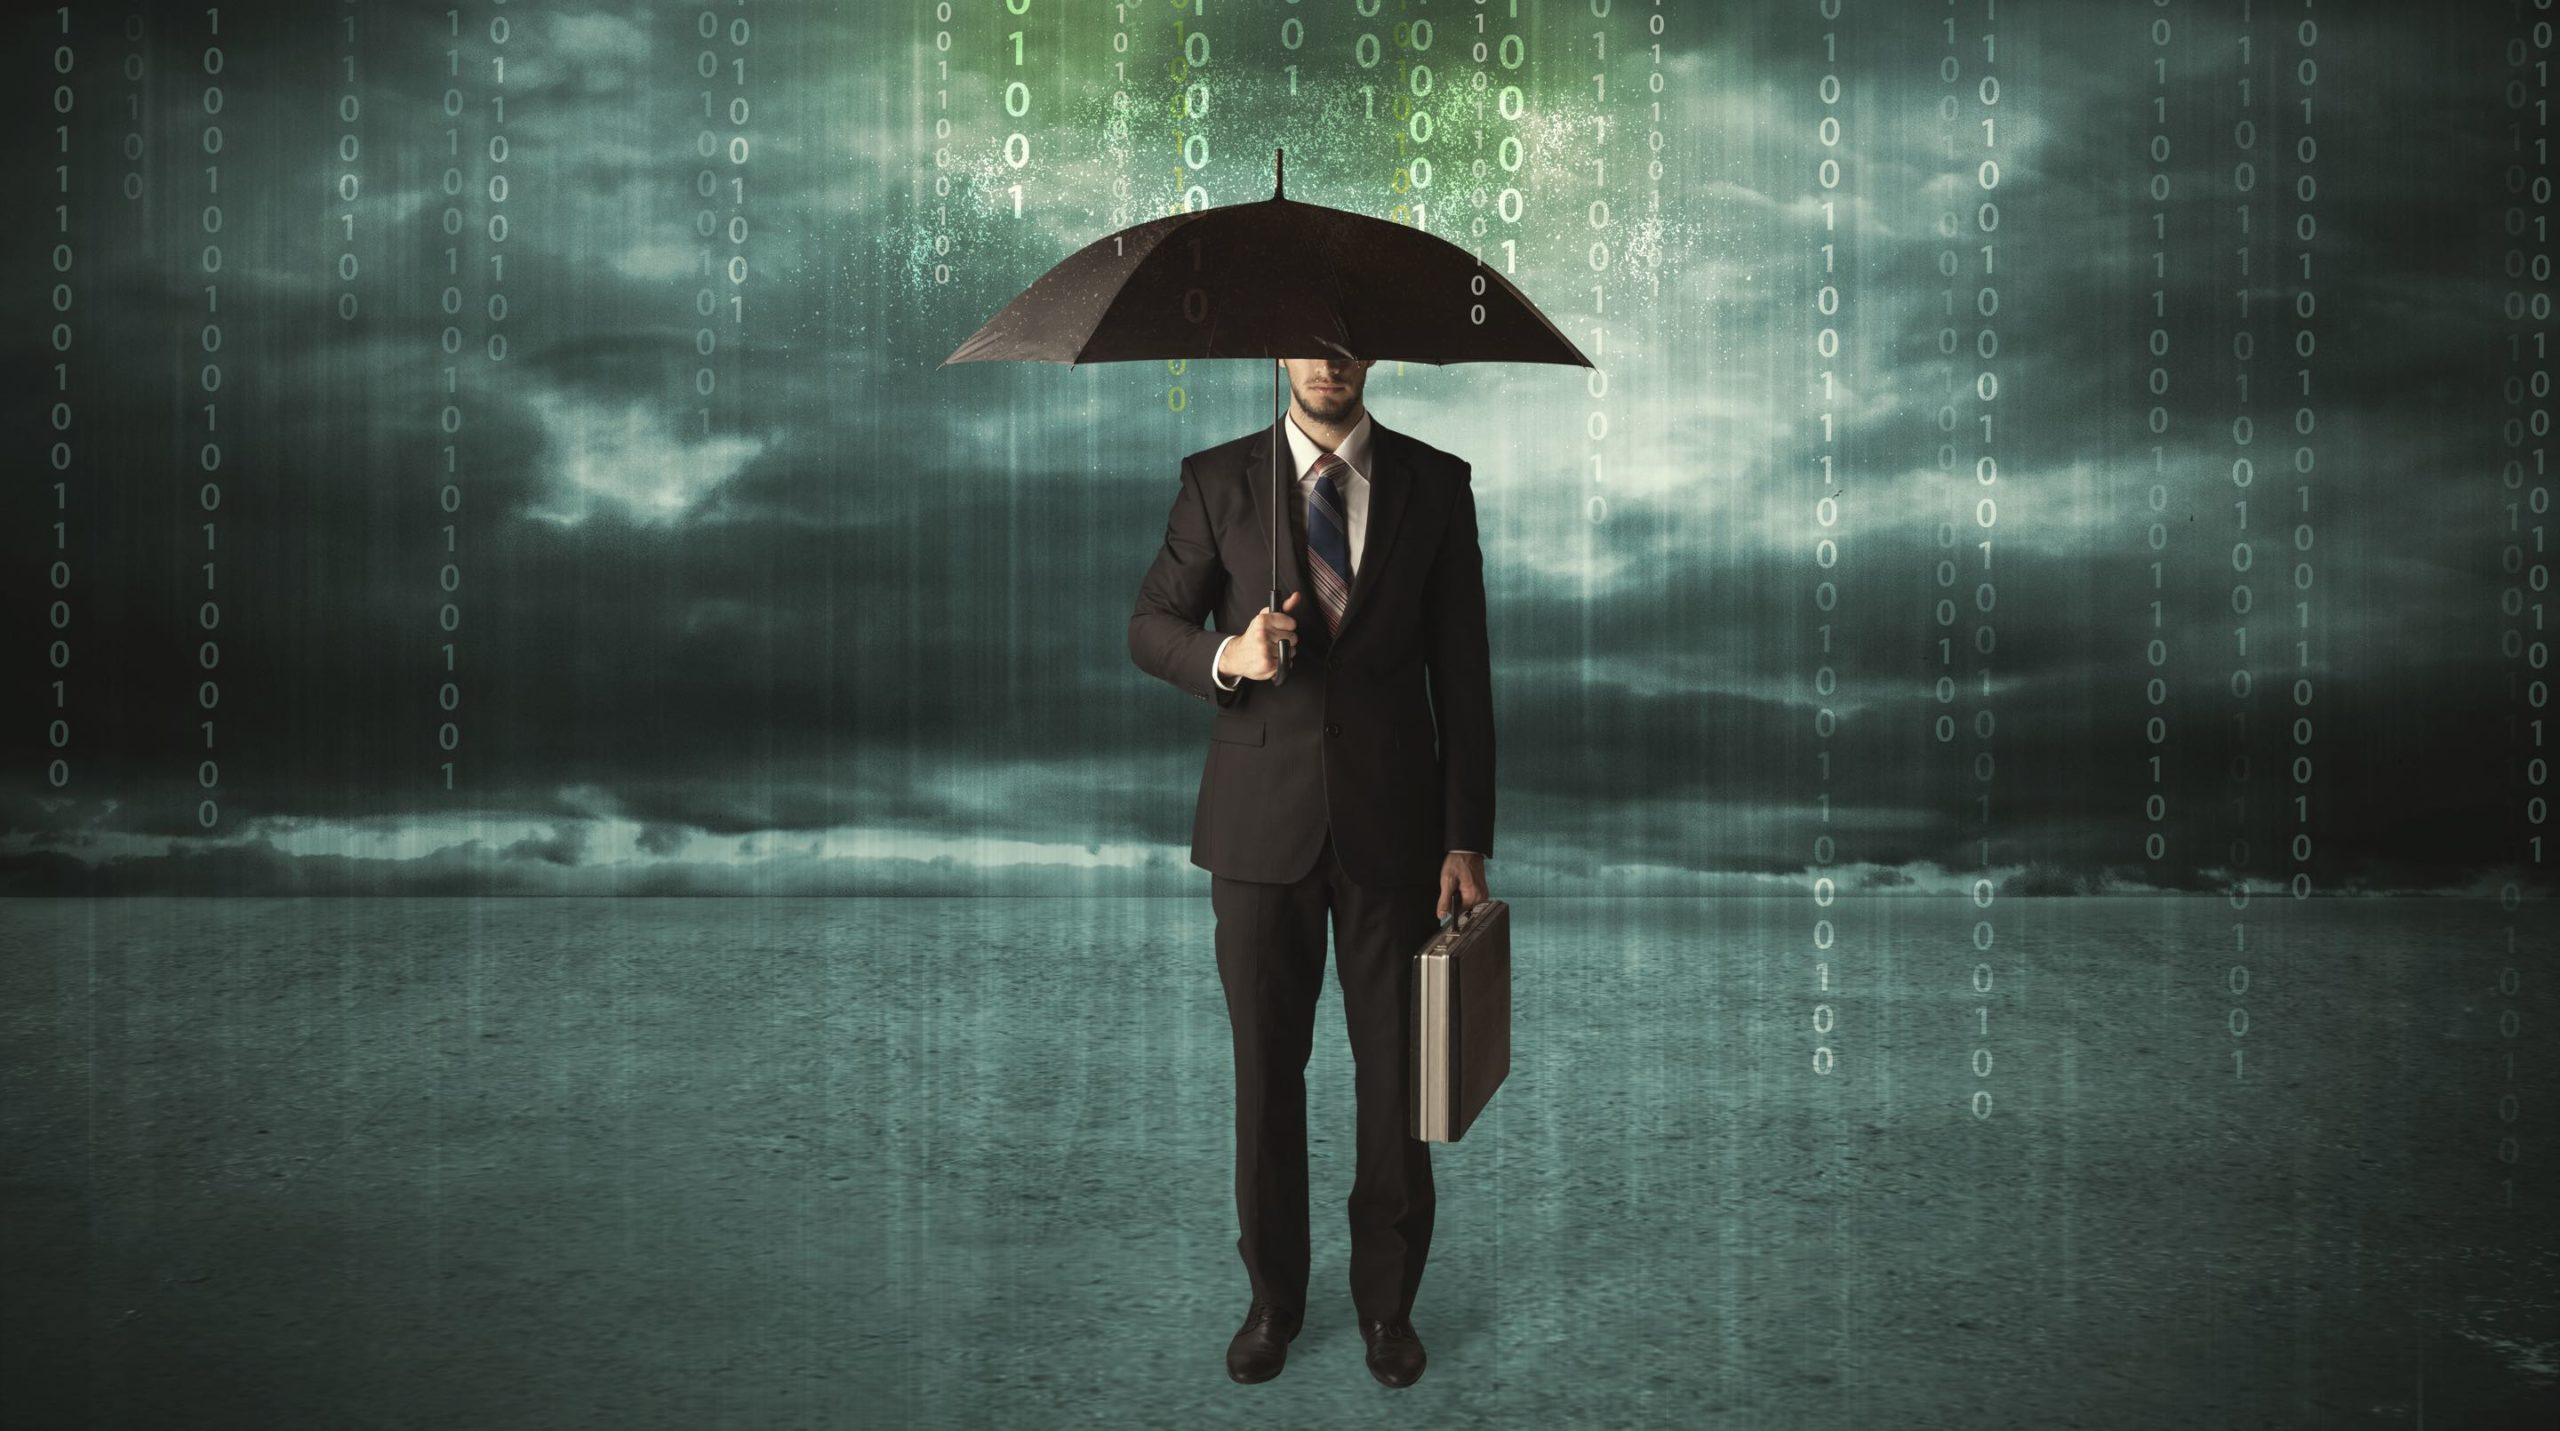 blog-banner-The-perfect-storm-of-digital-disruption-at-health-systems